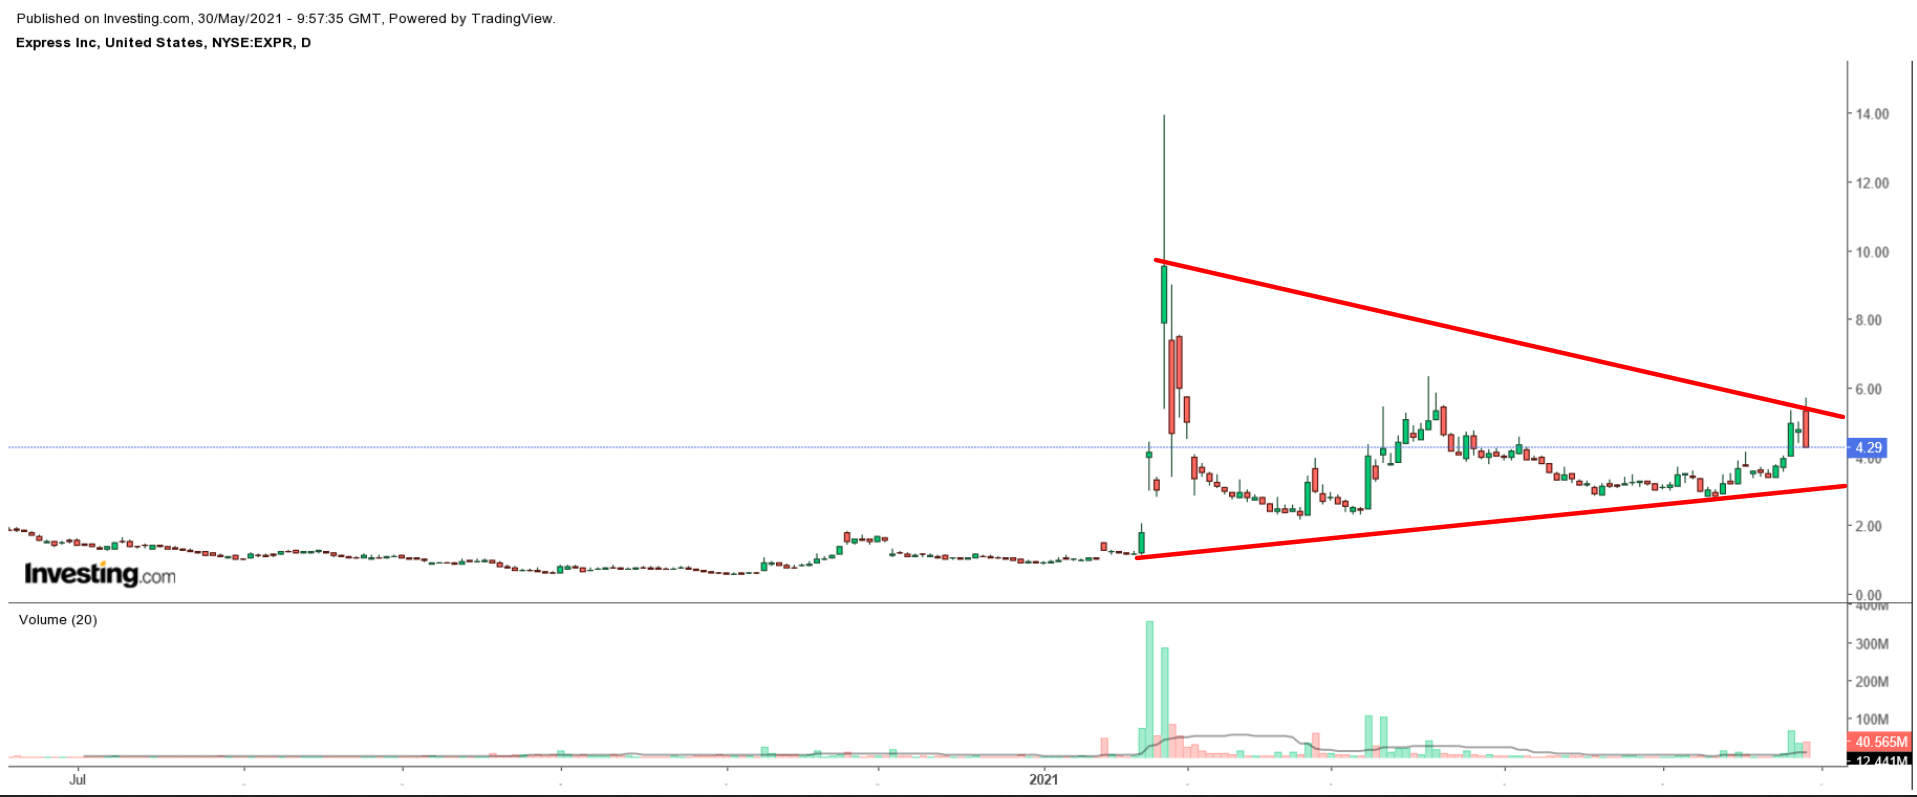 EXPR Daily Chart